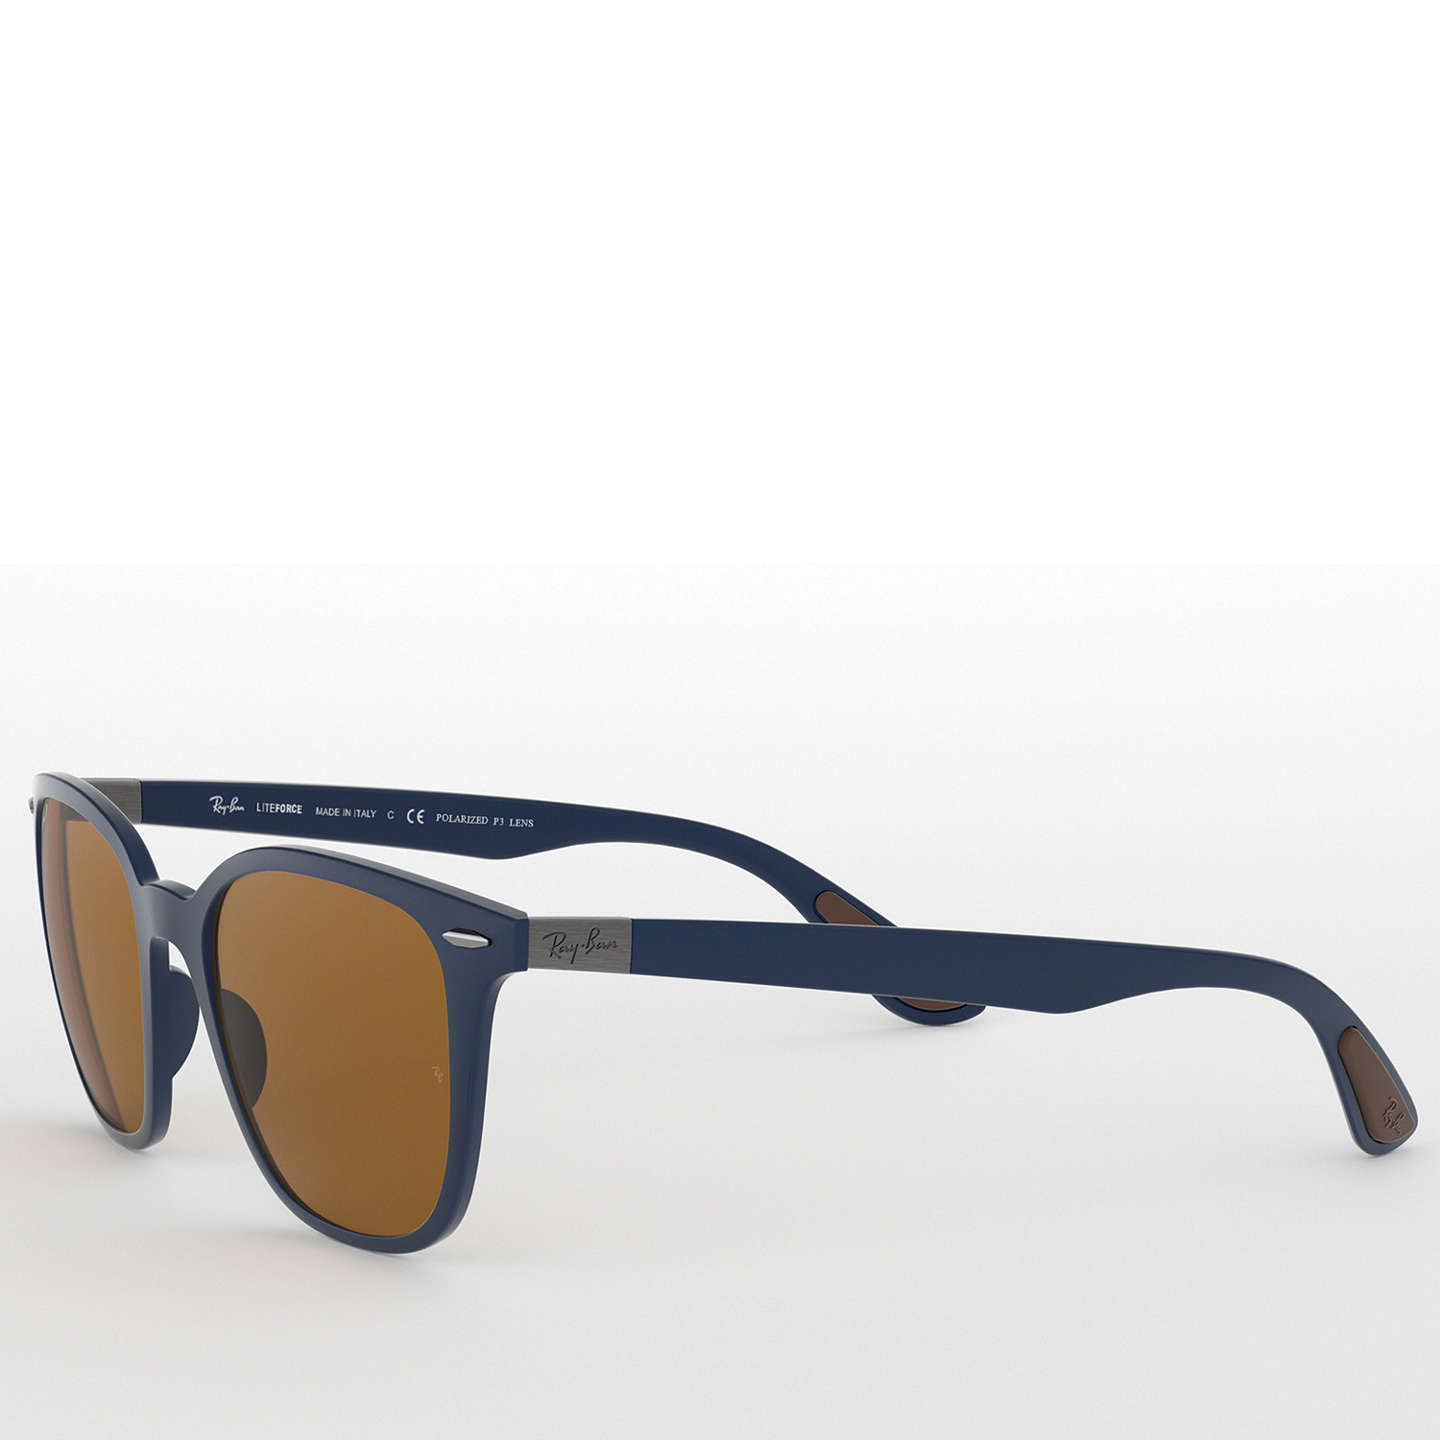 BuyRay-Ban RB4297 Wayfarer Polarised Sunglasses, Blue/Brown Online at johnlewis.com